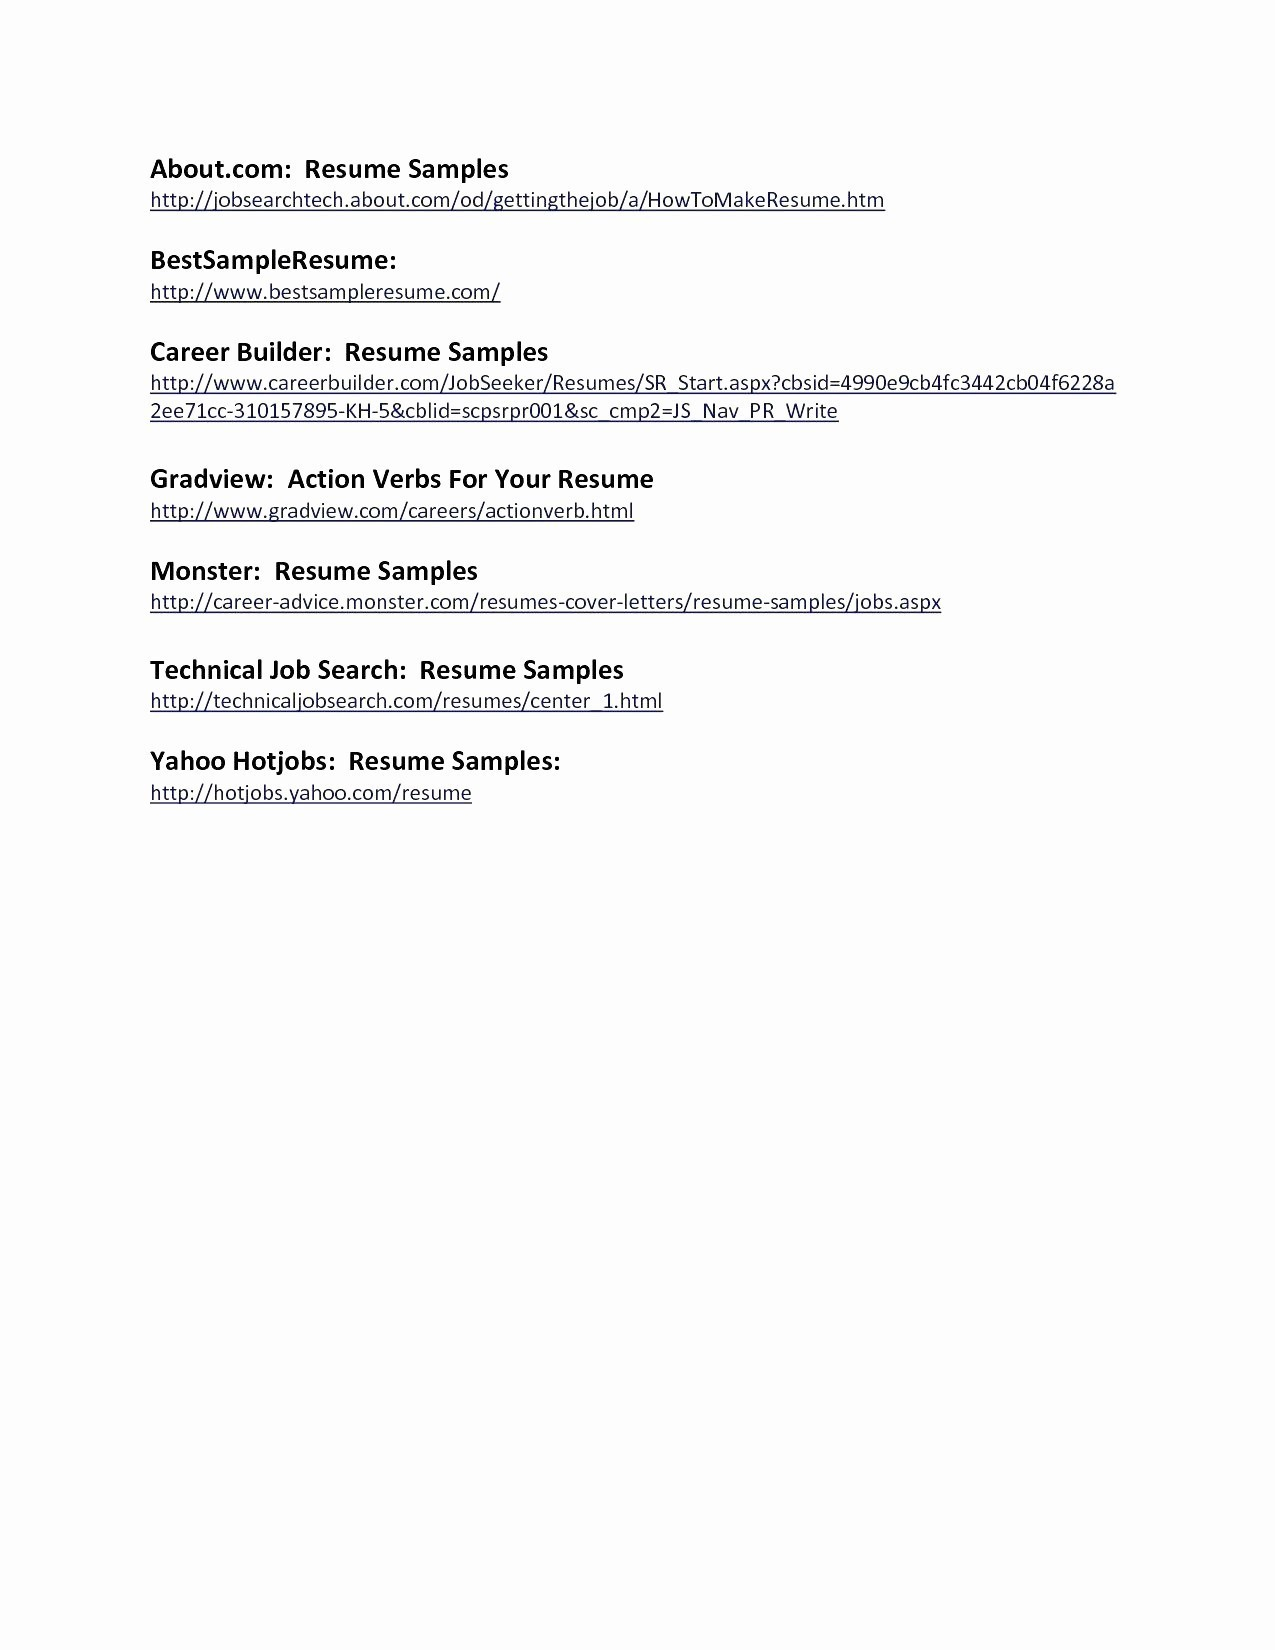 Shoe Store Resume - 20 Retail Store Manager Resume